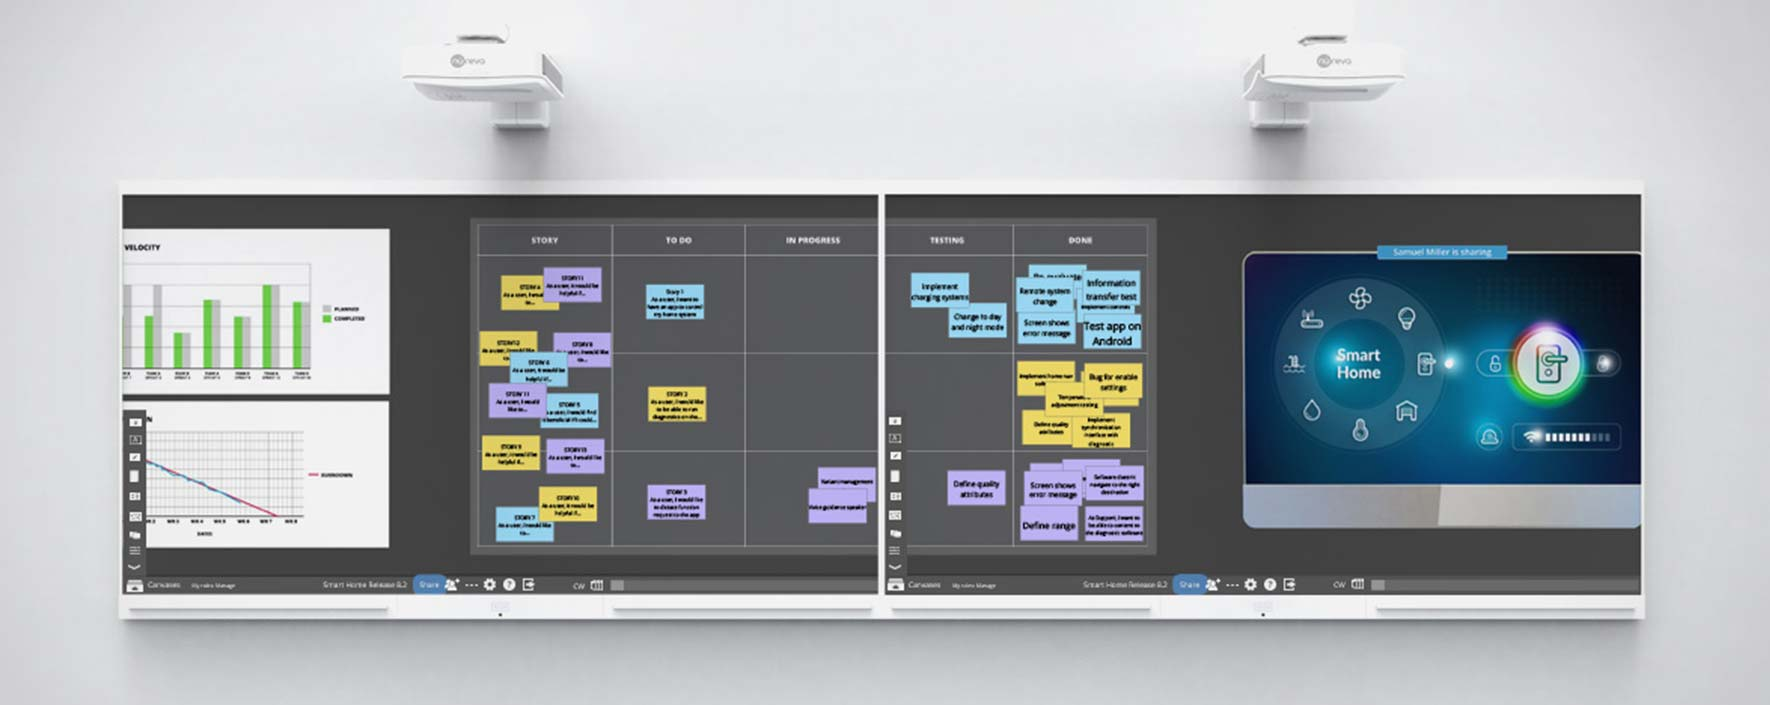 Nureva Wall is an interactive collaborative projected whiteboard